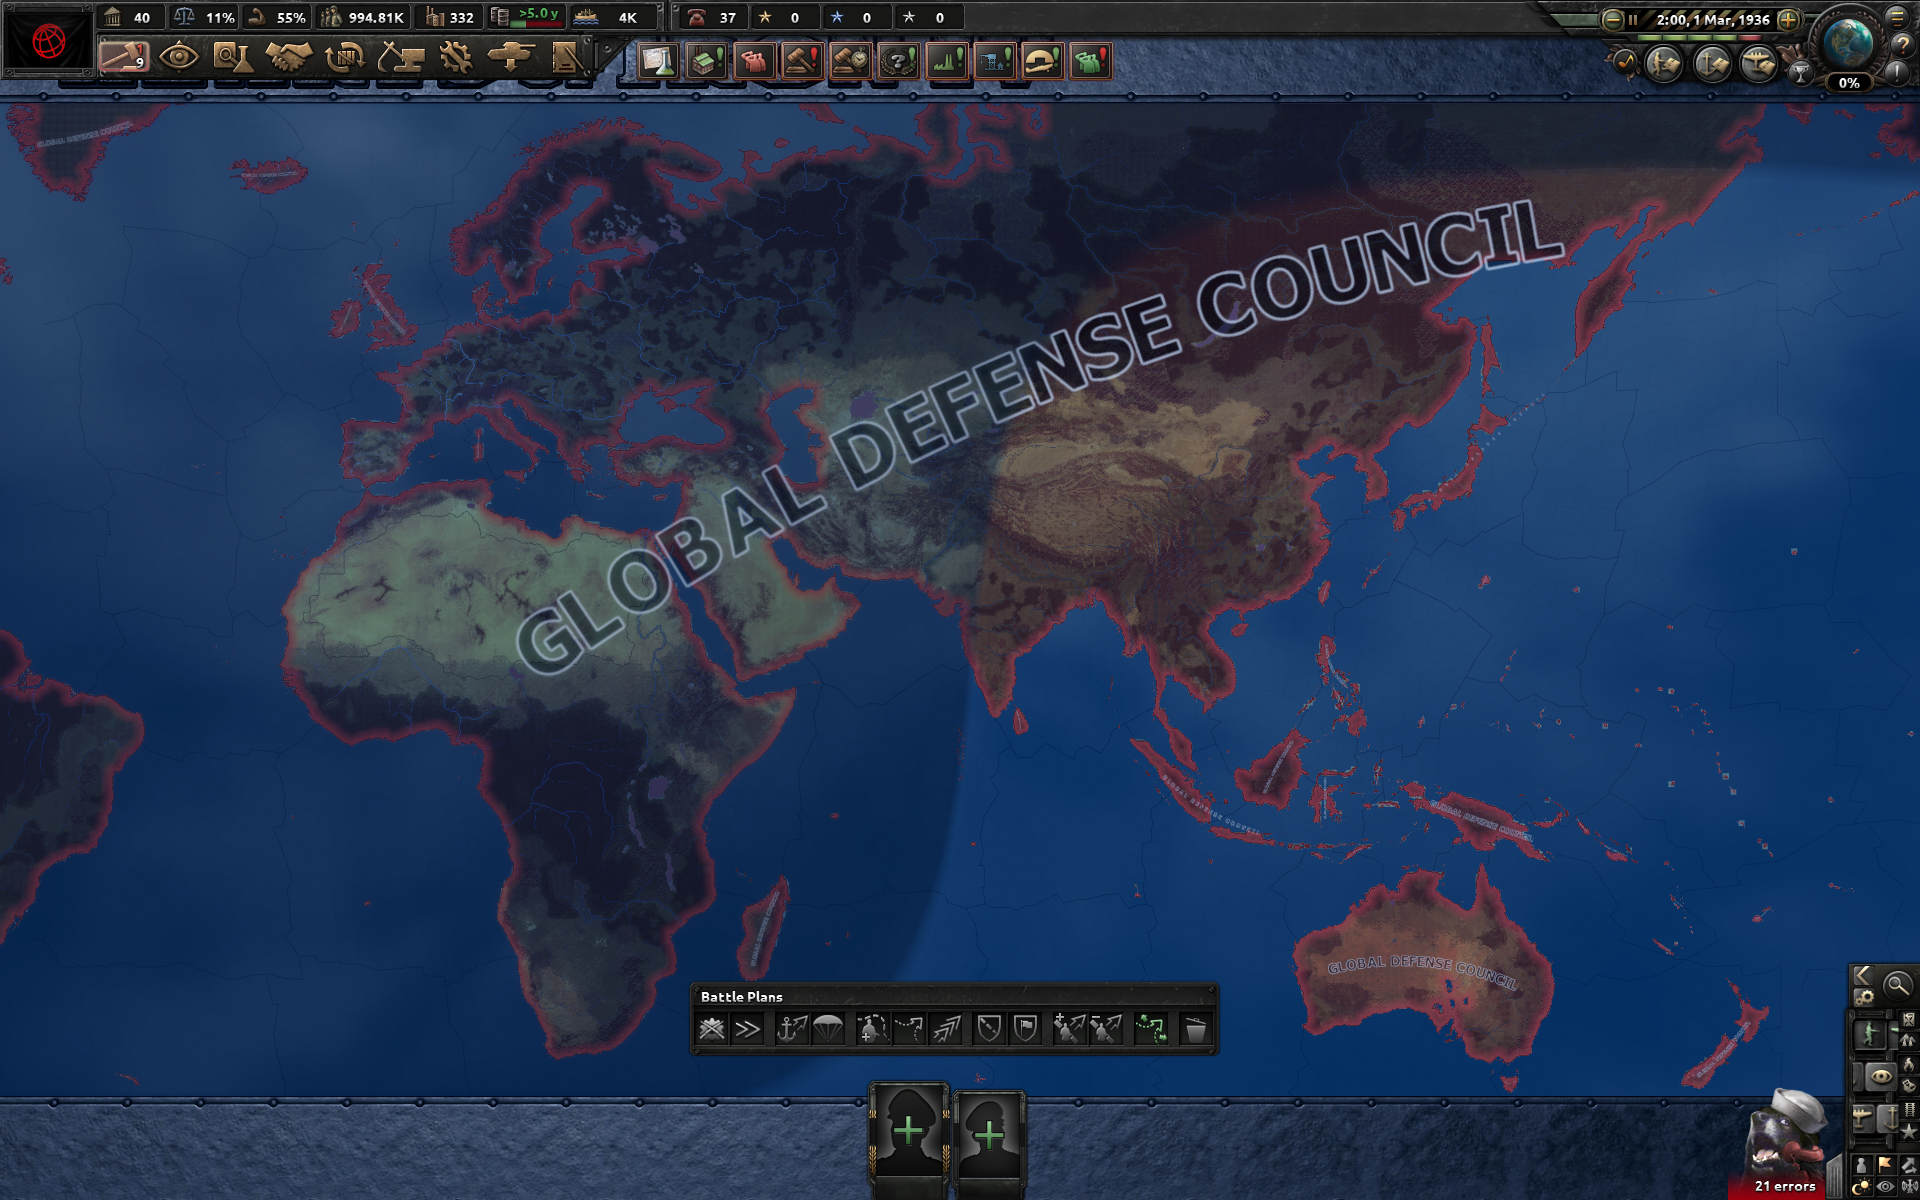 Dev_Diary_Global_Defense_Council.png